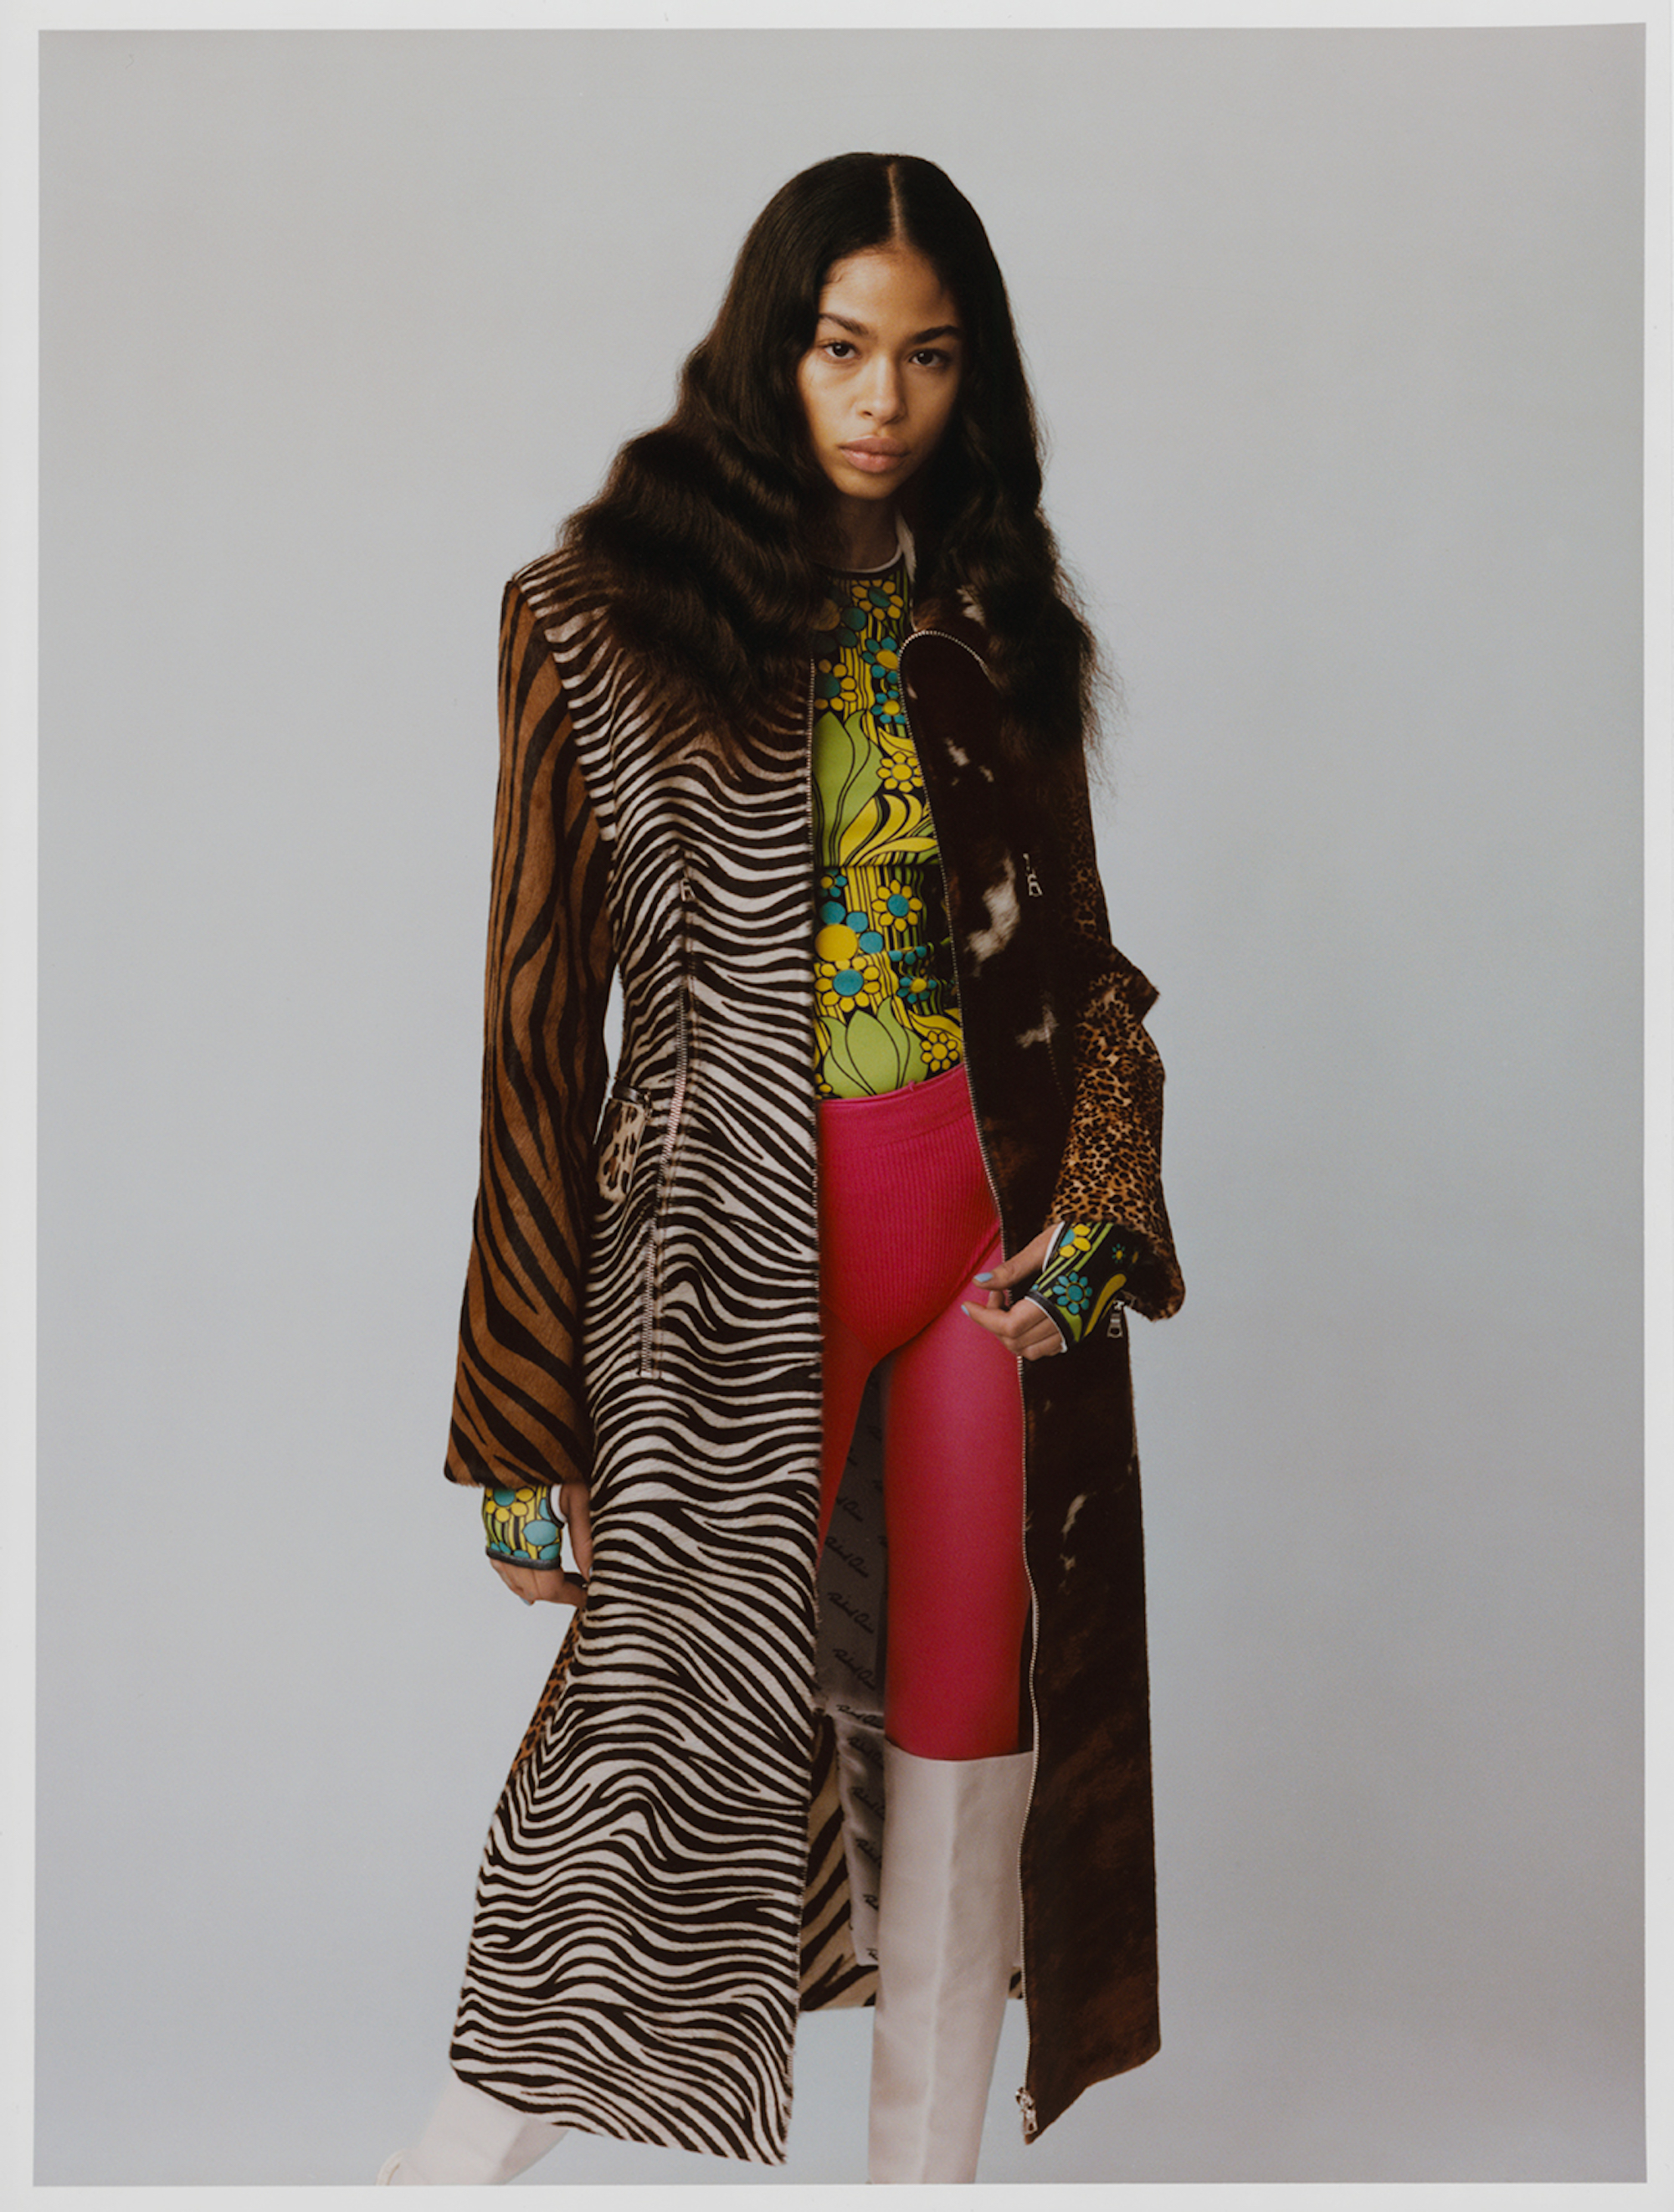 Astral angel fashion editorial animal print coat